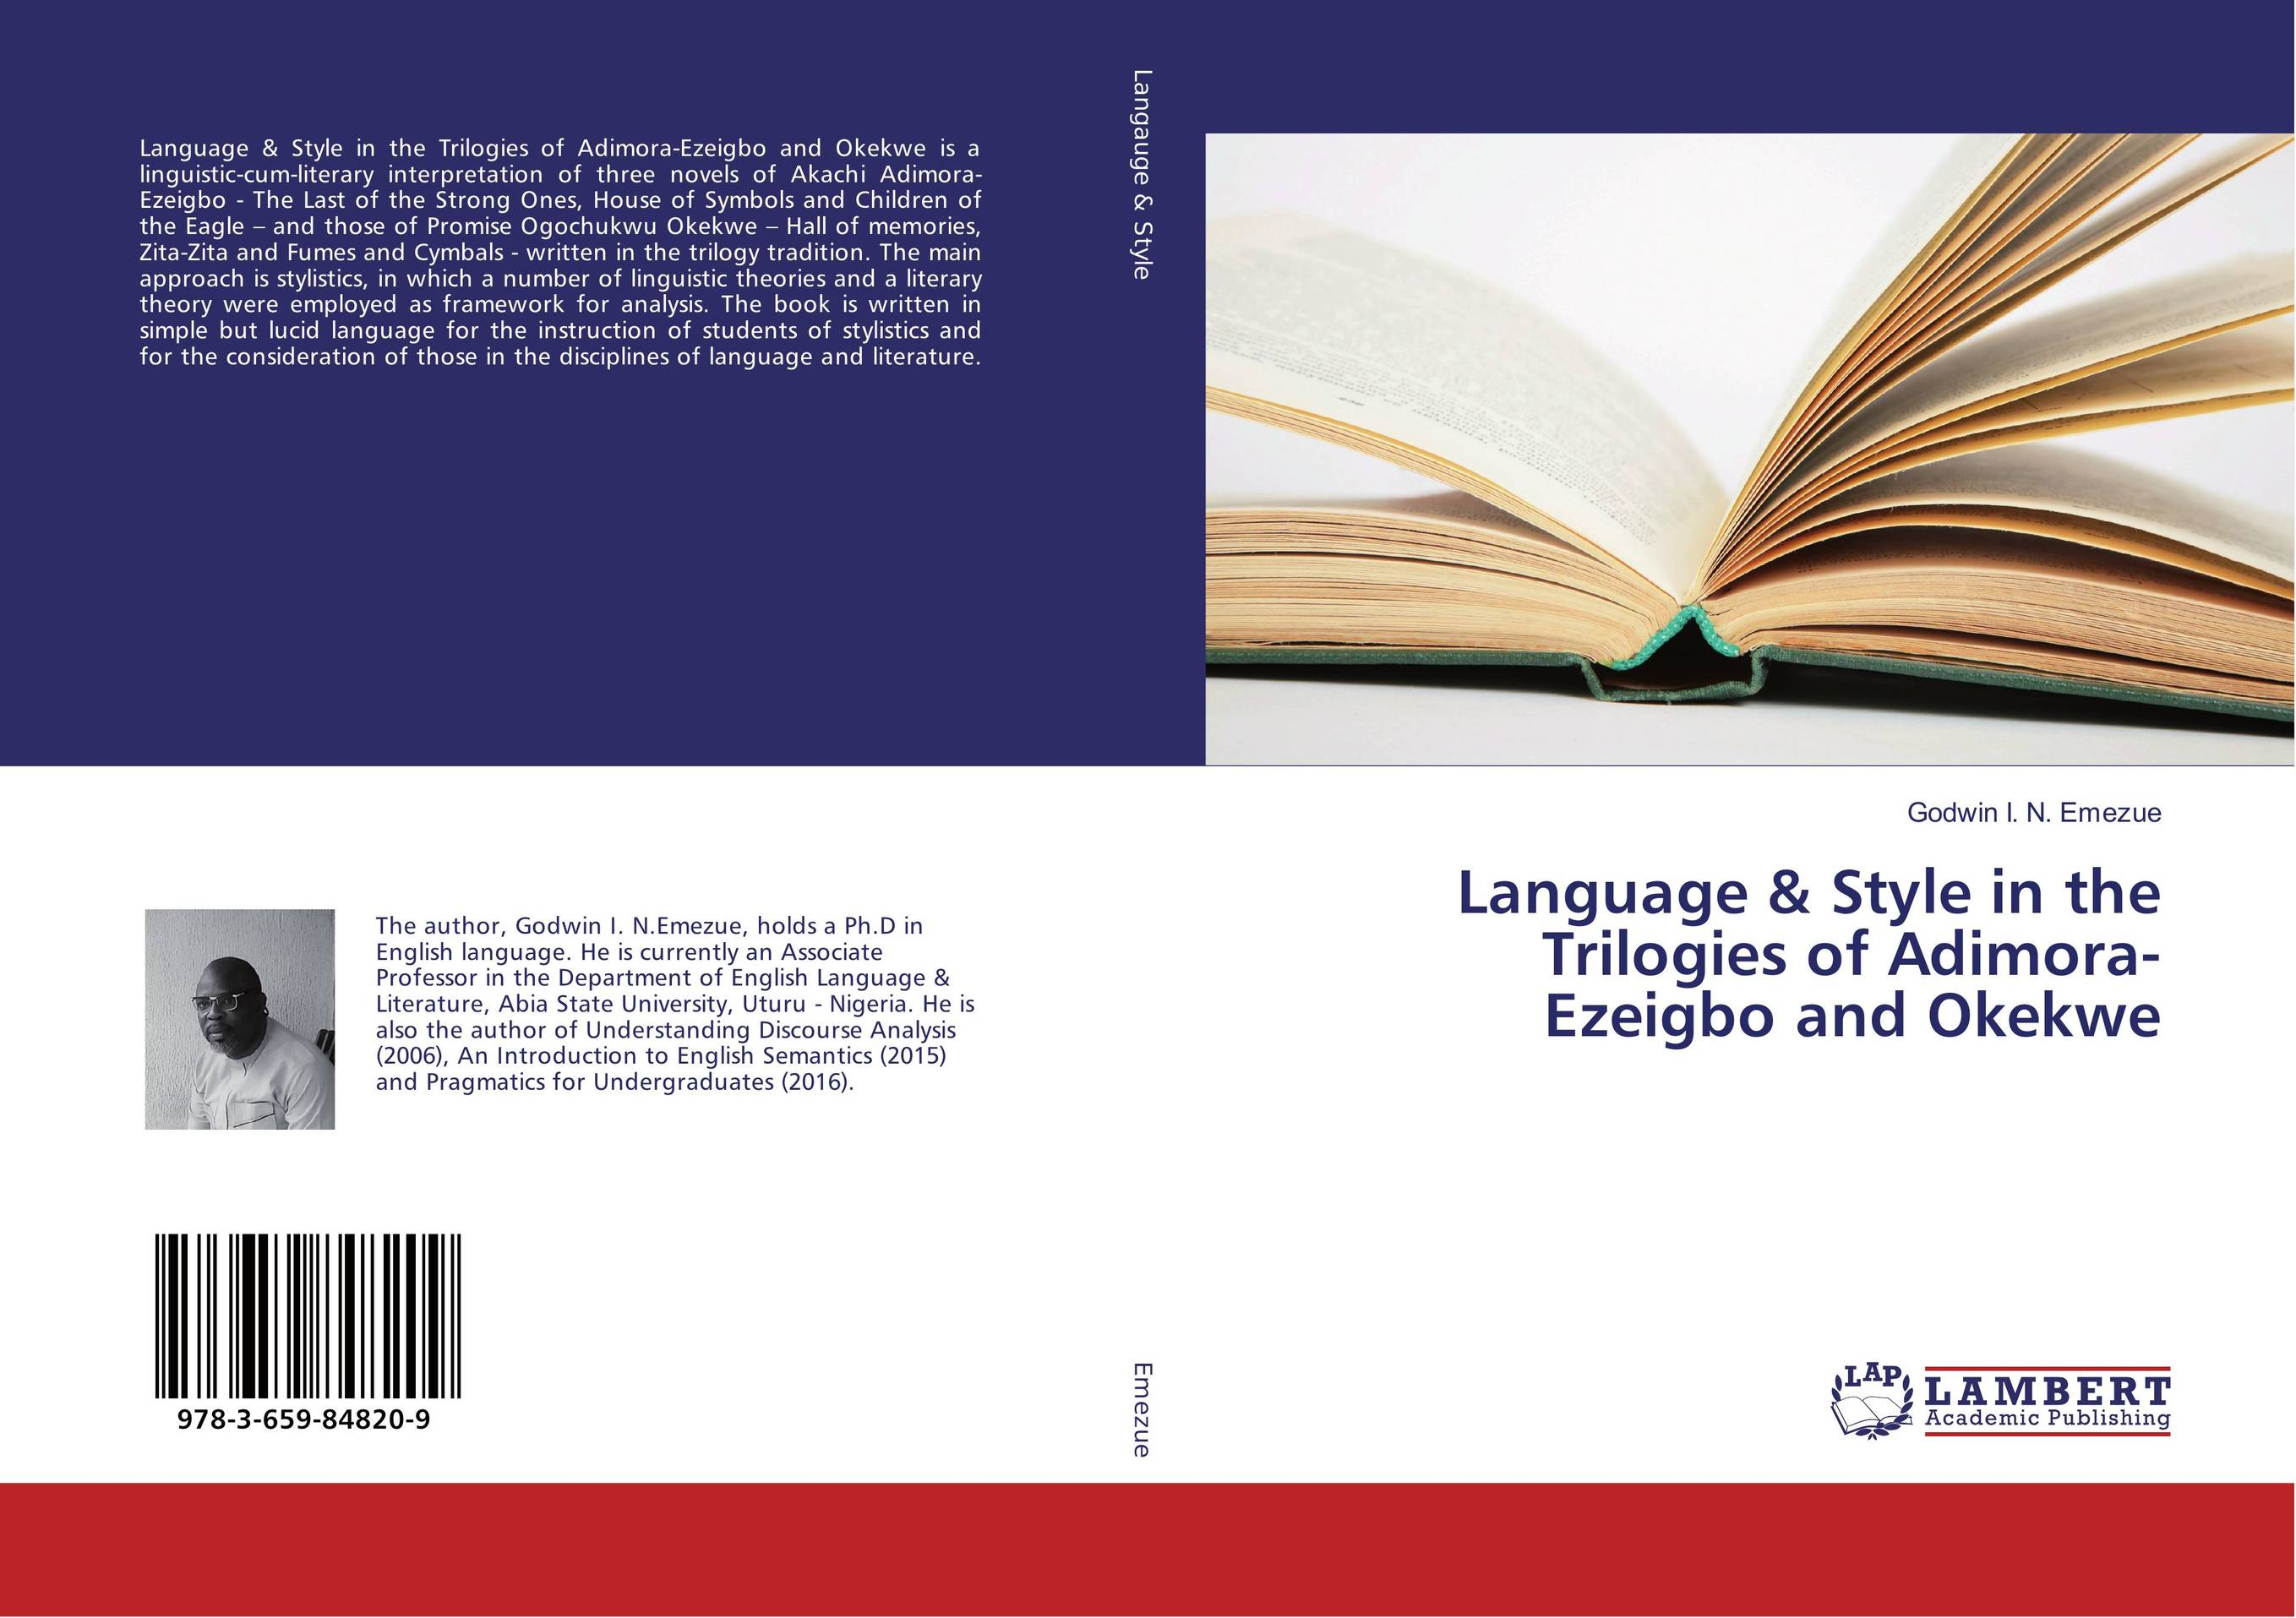 Language & Style in the Trilogies of Adimora-Ezeigbo and Okekwe early signs of language shifting